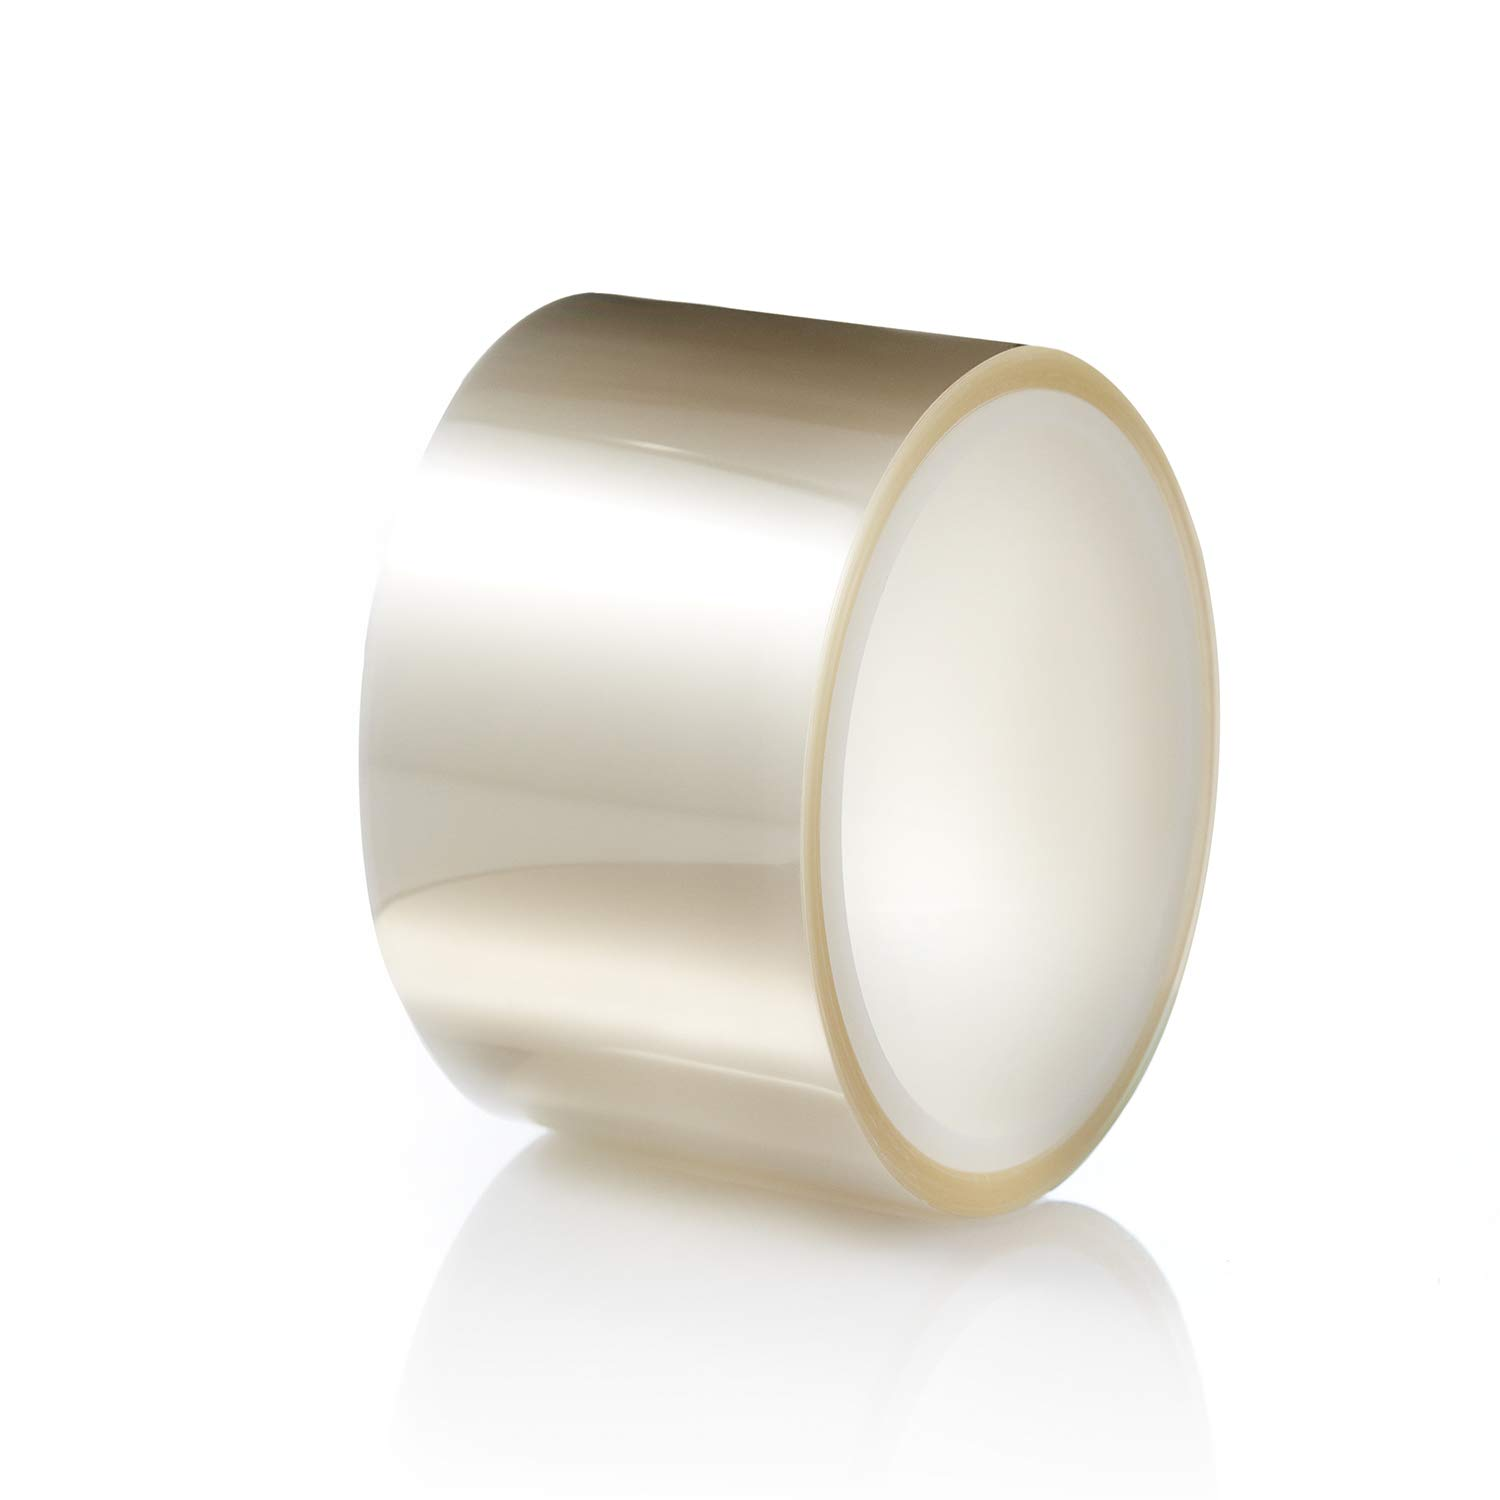 TIERRAFILM Clear Acetate Roll 2 inch High - Cake Collar for Chocolate and Cake Decorating - Used by Top Pastry Chefs (2'' x 16 feet 125 Micron)